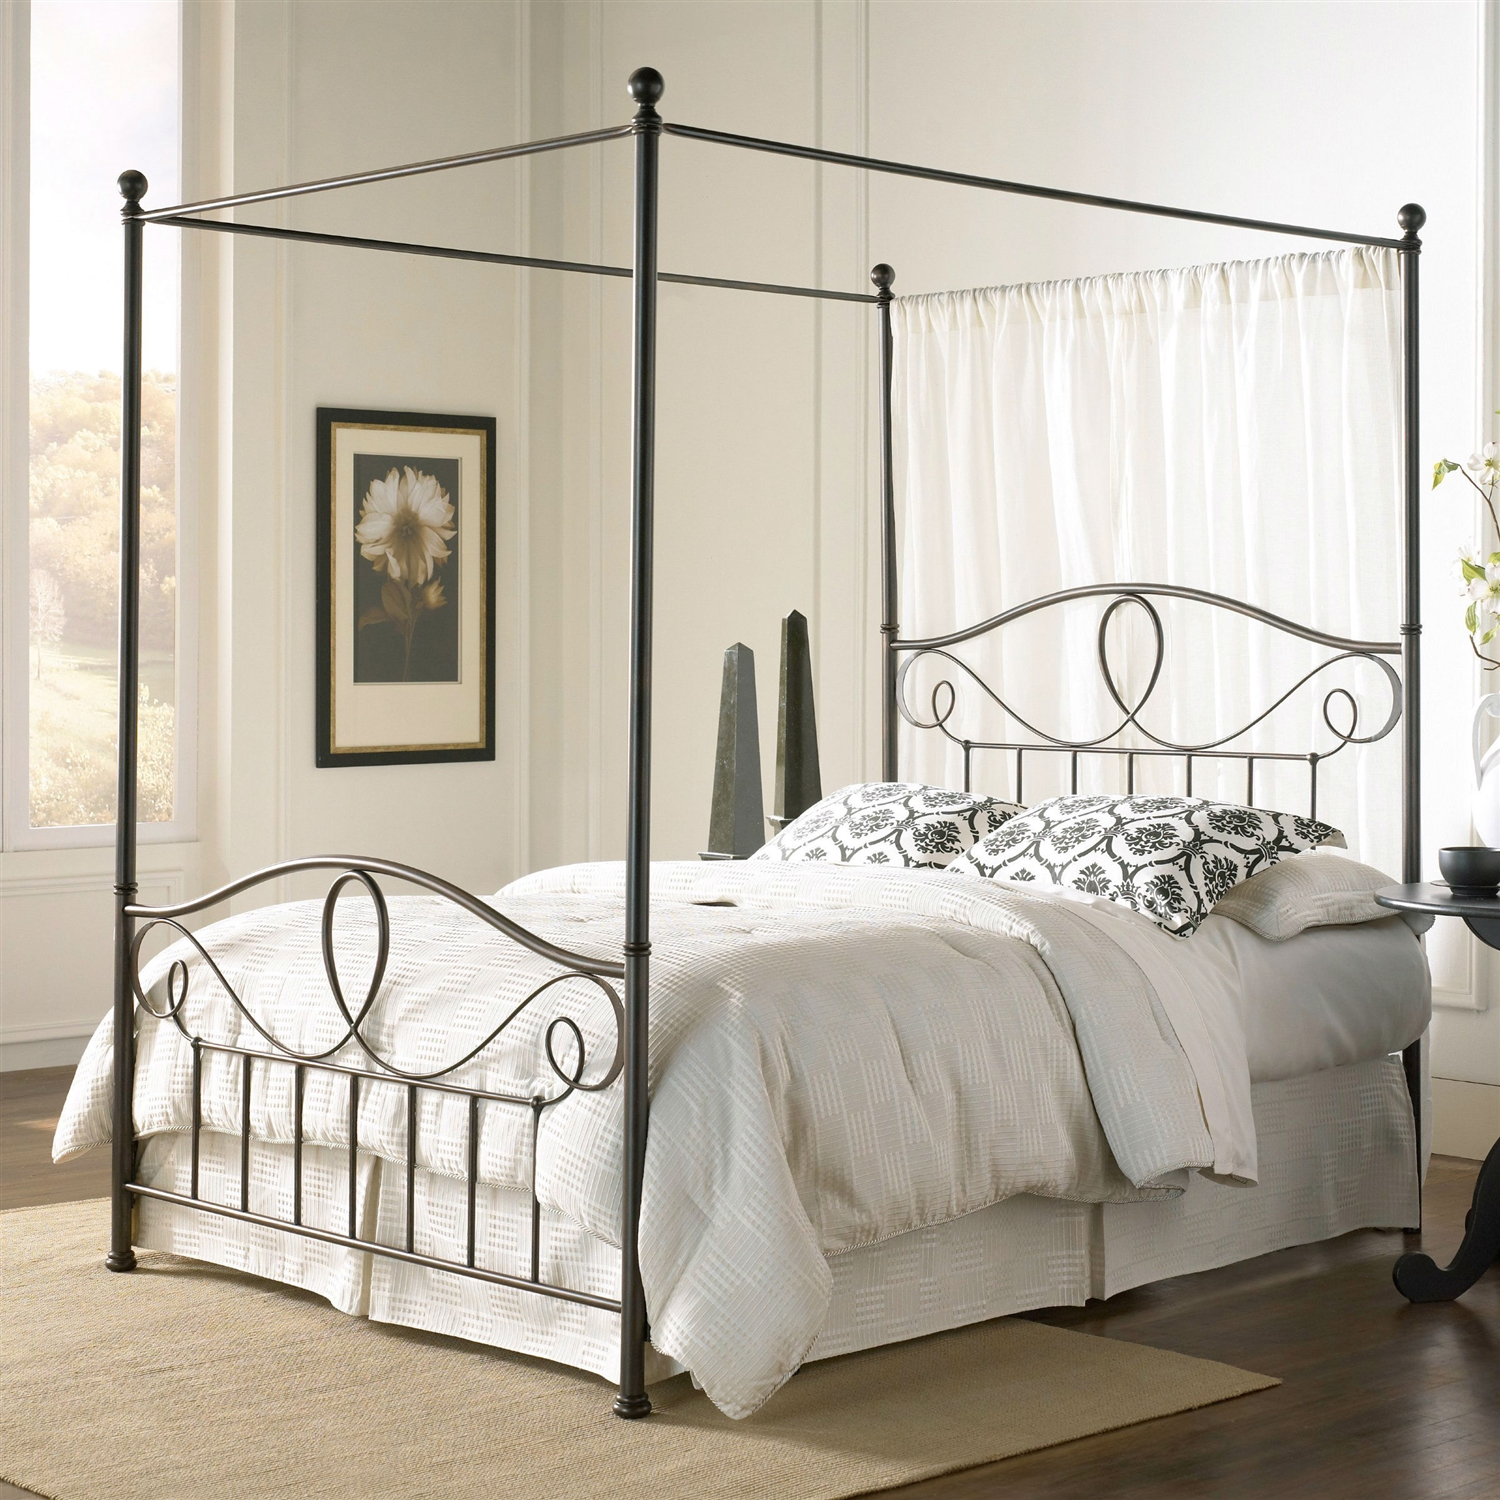 Queen size Metal Canopy Bed with Headboard and Footboard in Bronze Finish | FastFurnishings.com & Queen size Metal Canopy Bed with Headboard and Footboard in Bronze ...